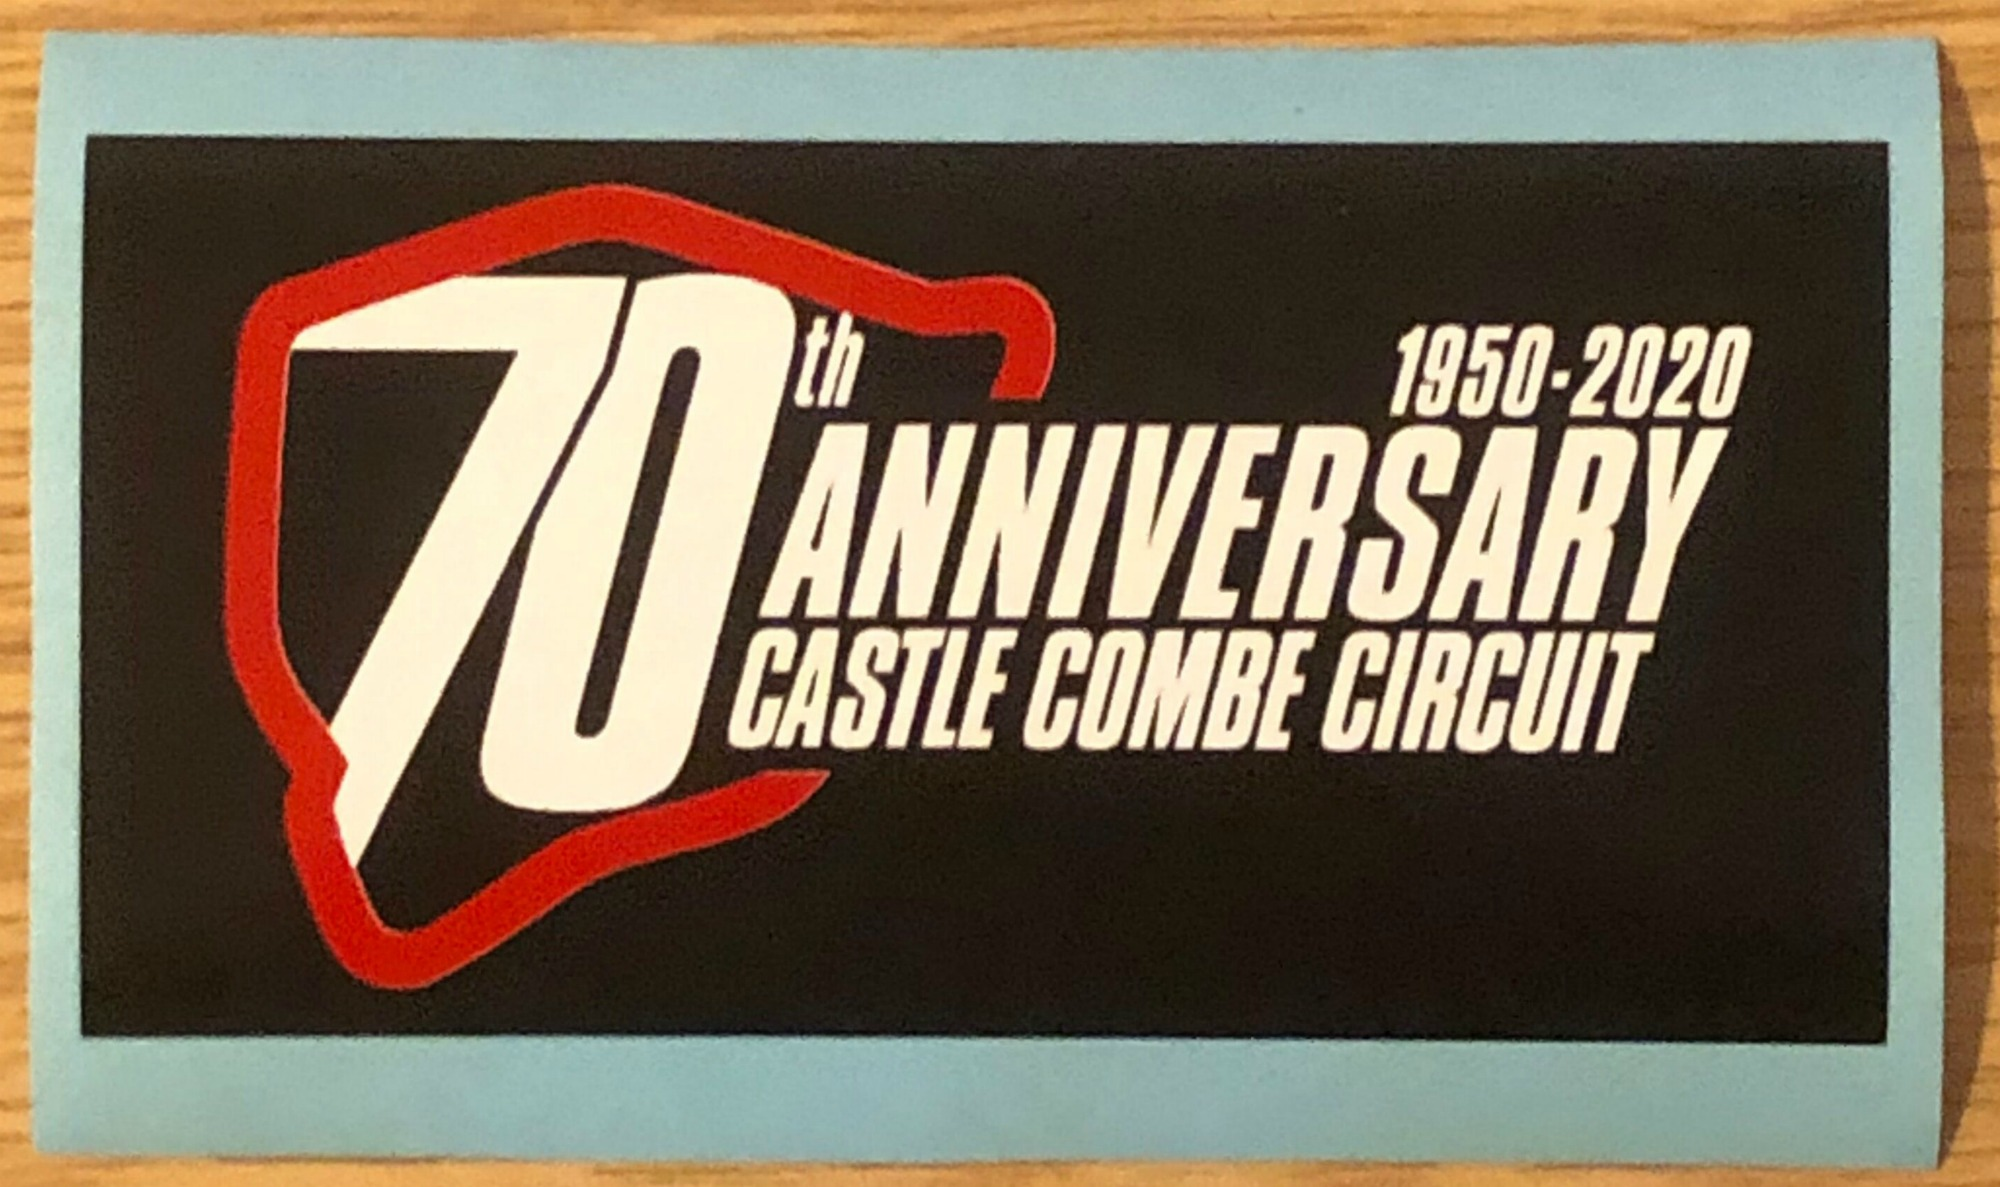 The 70th anniversary sticker